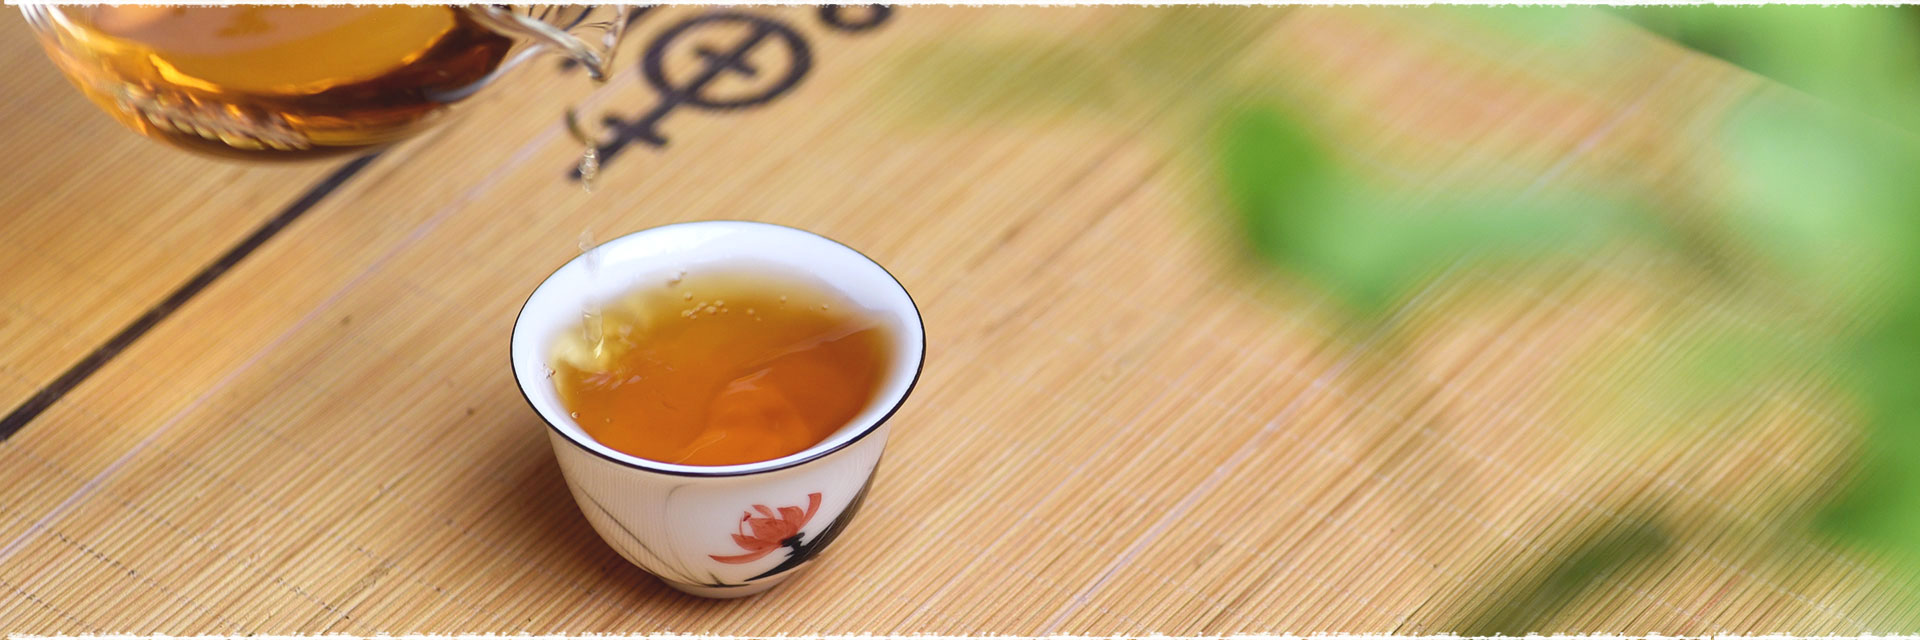 Gongfu tea vs. kung fu tea